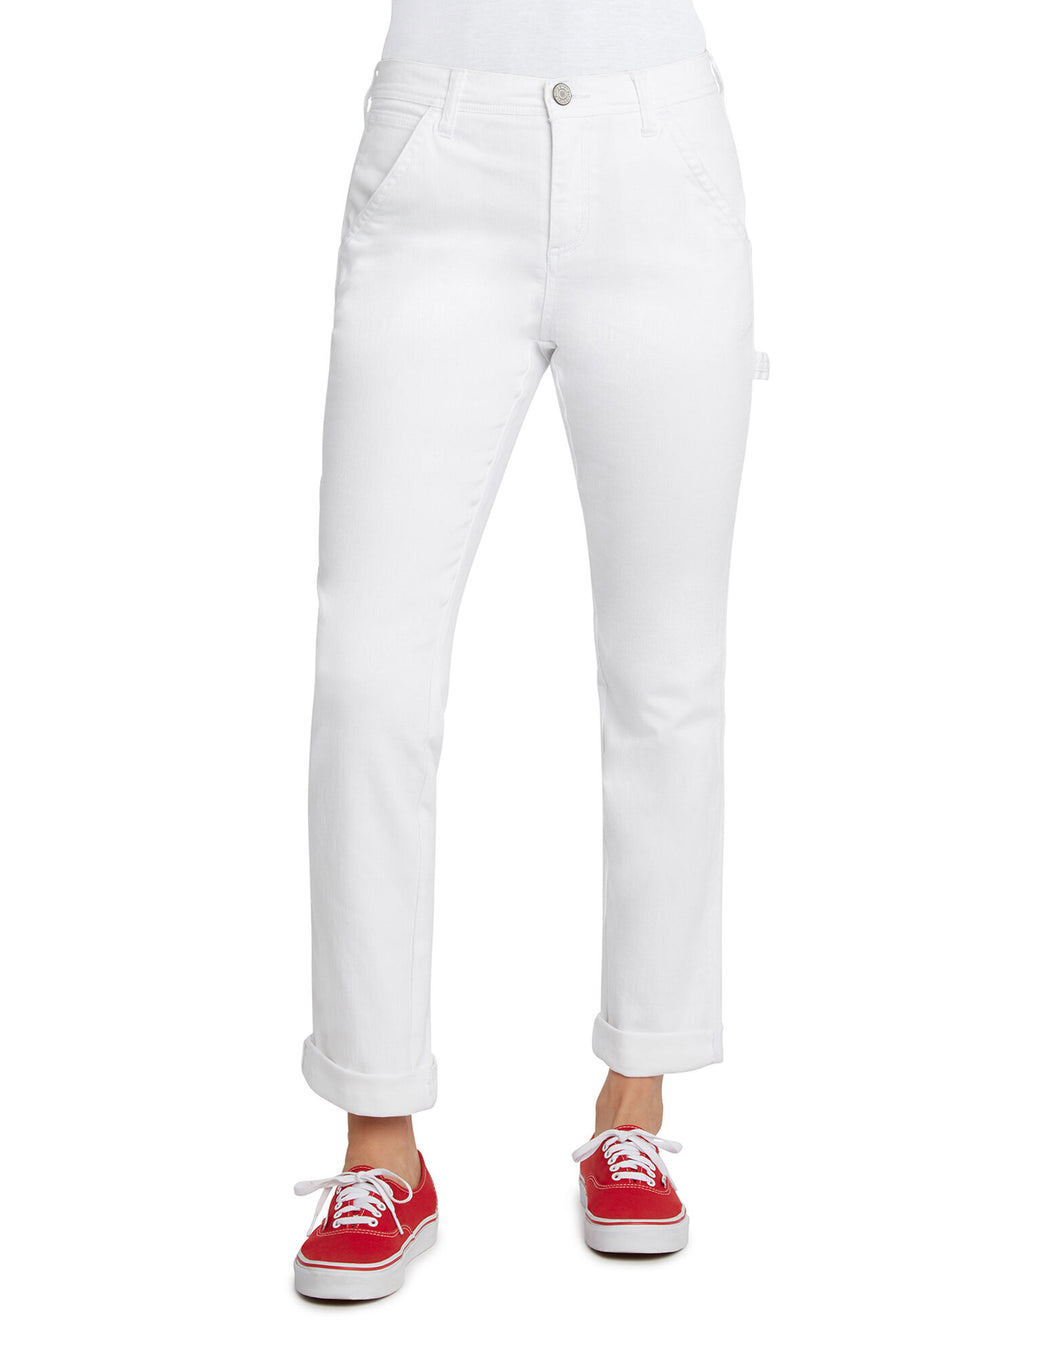 DICKIES- CARPENTER PANT SLIM FIT- WHITE